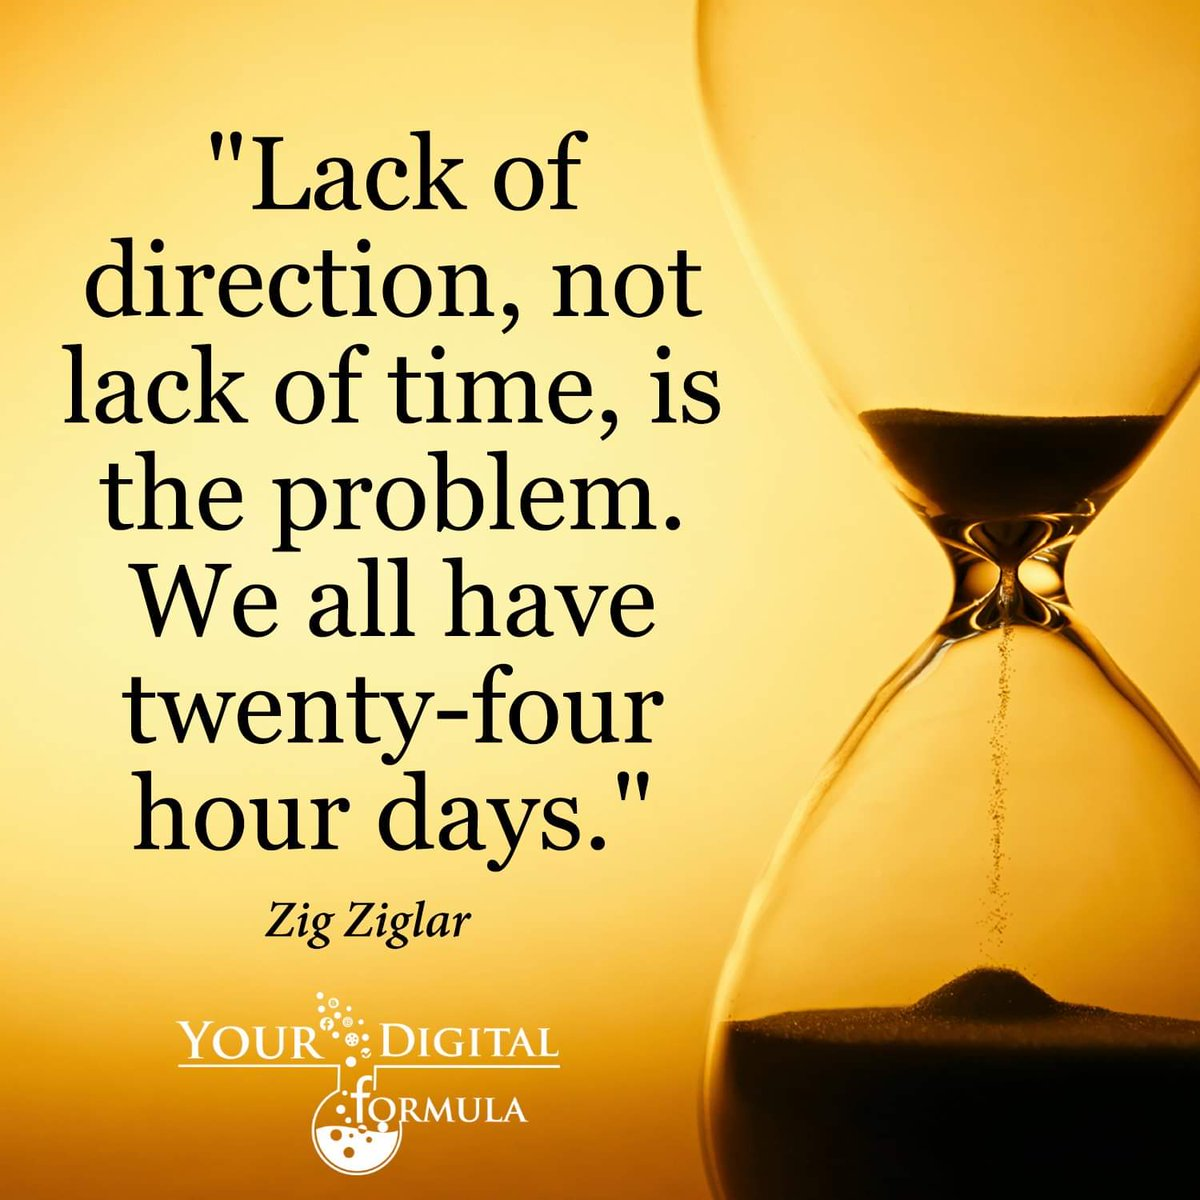 Lack of direction, not lack of time, is the problem. We all have twenty-four hour days. ~Zig Ziglar #SuccessTRAIN #IQRTG #spdc  #InspireThemRetweetTuesday <br>http://pic.twitter.com/mCq0cNrDyl